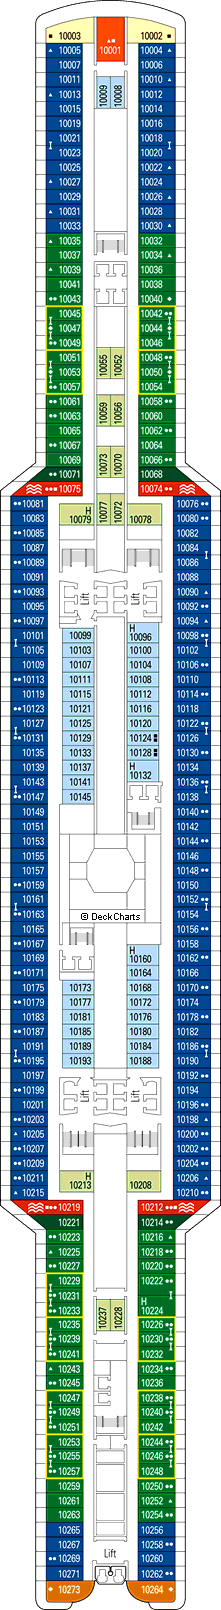 MSC Seaview Deck Plans: Ship Layout, Staterooms & Map ...